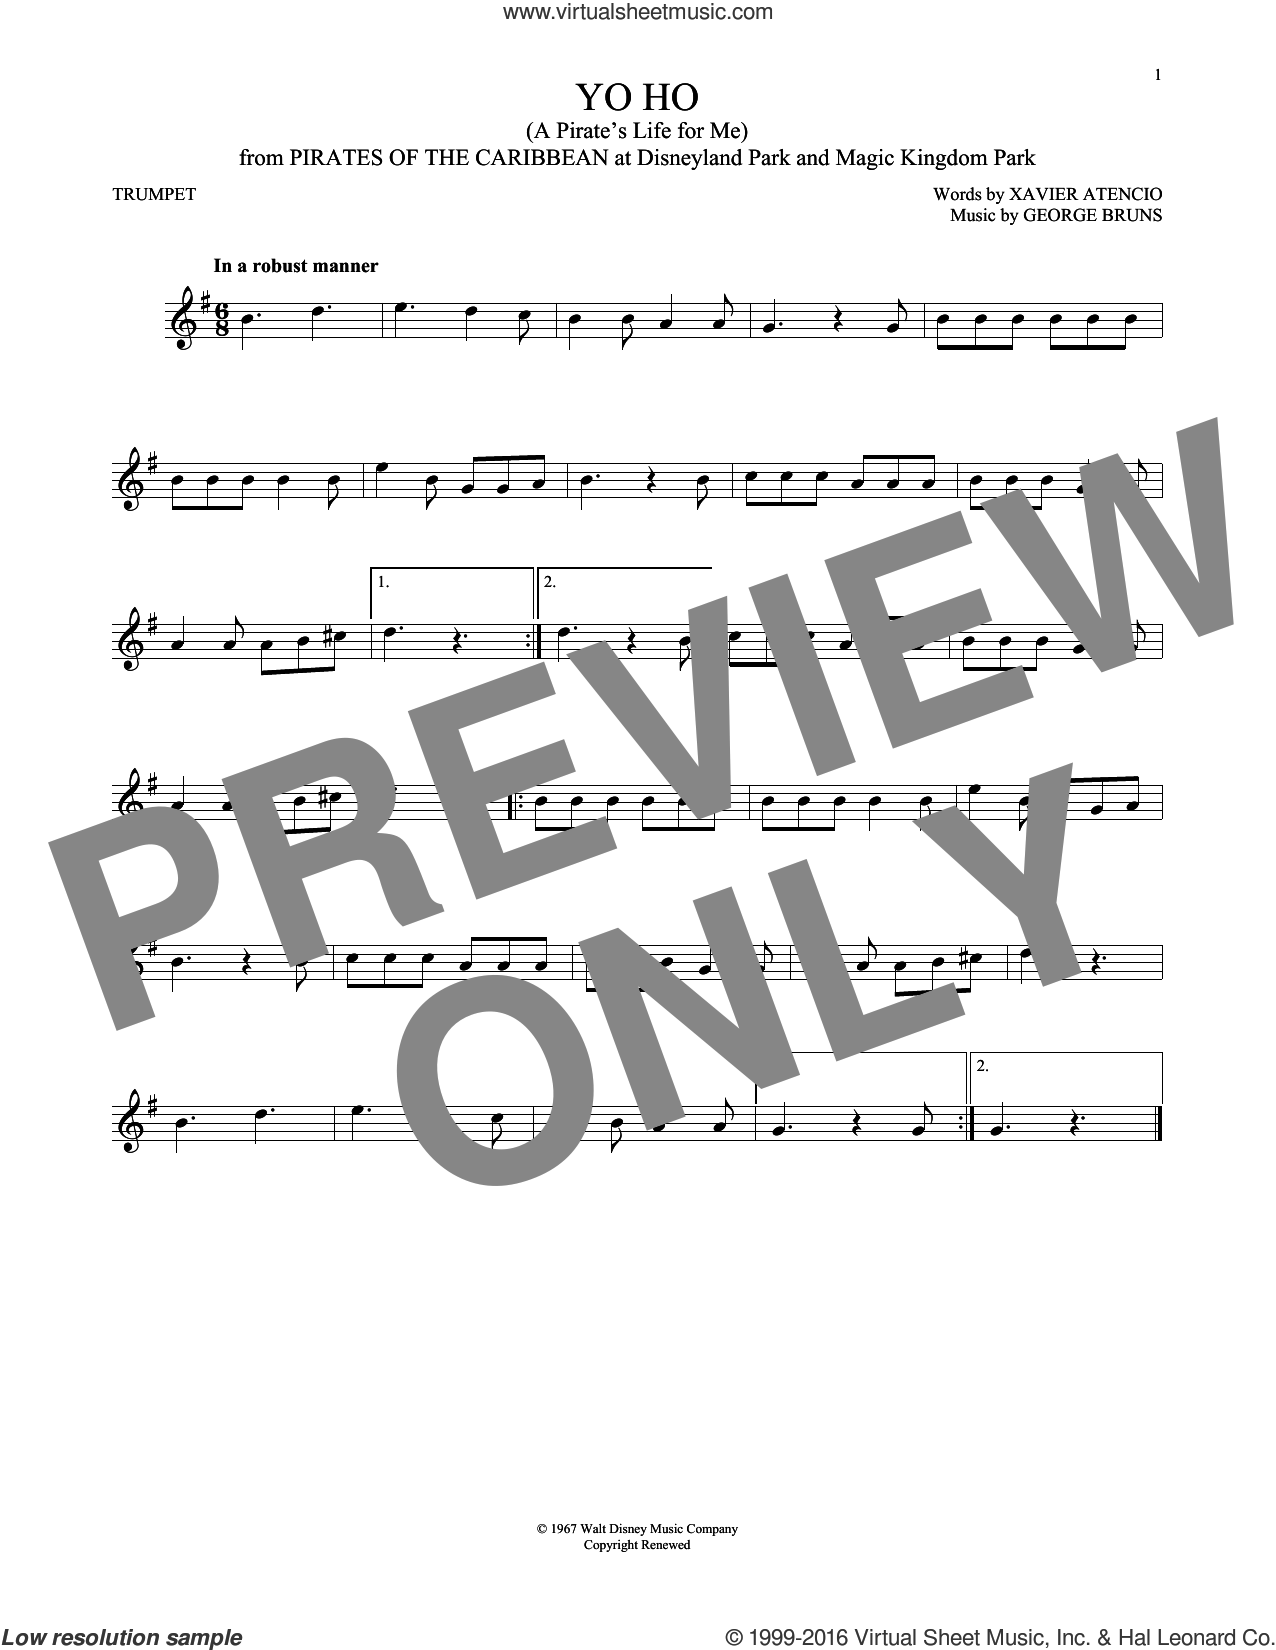 Yo Ho (A Pirate's Life For Me) sheet music for trumpet solo by George Bruns and Xavier Atencio, intermediate skill level